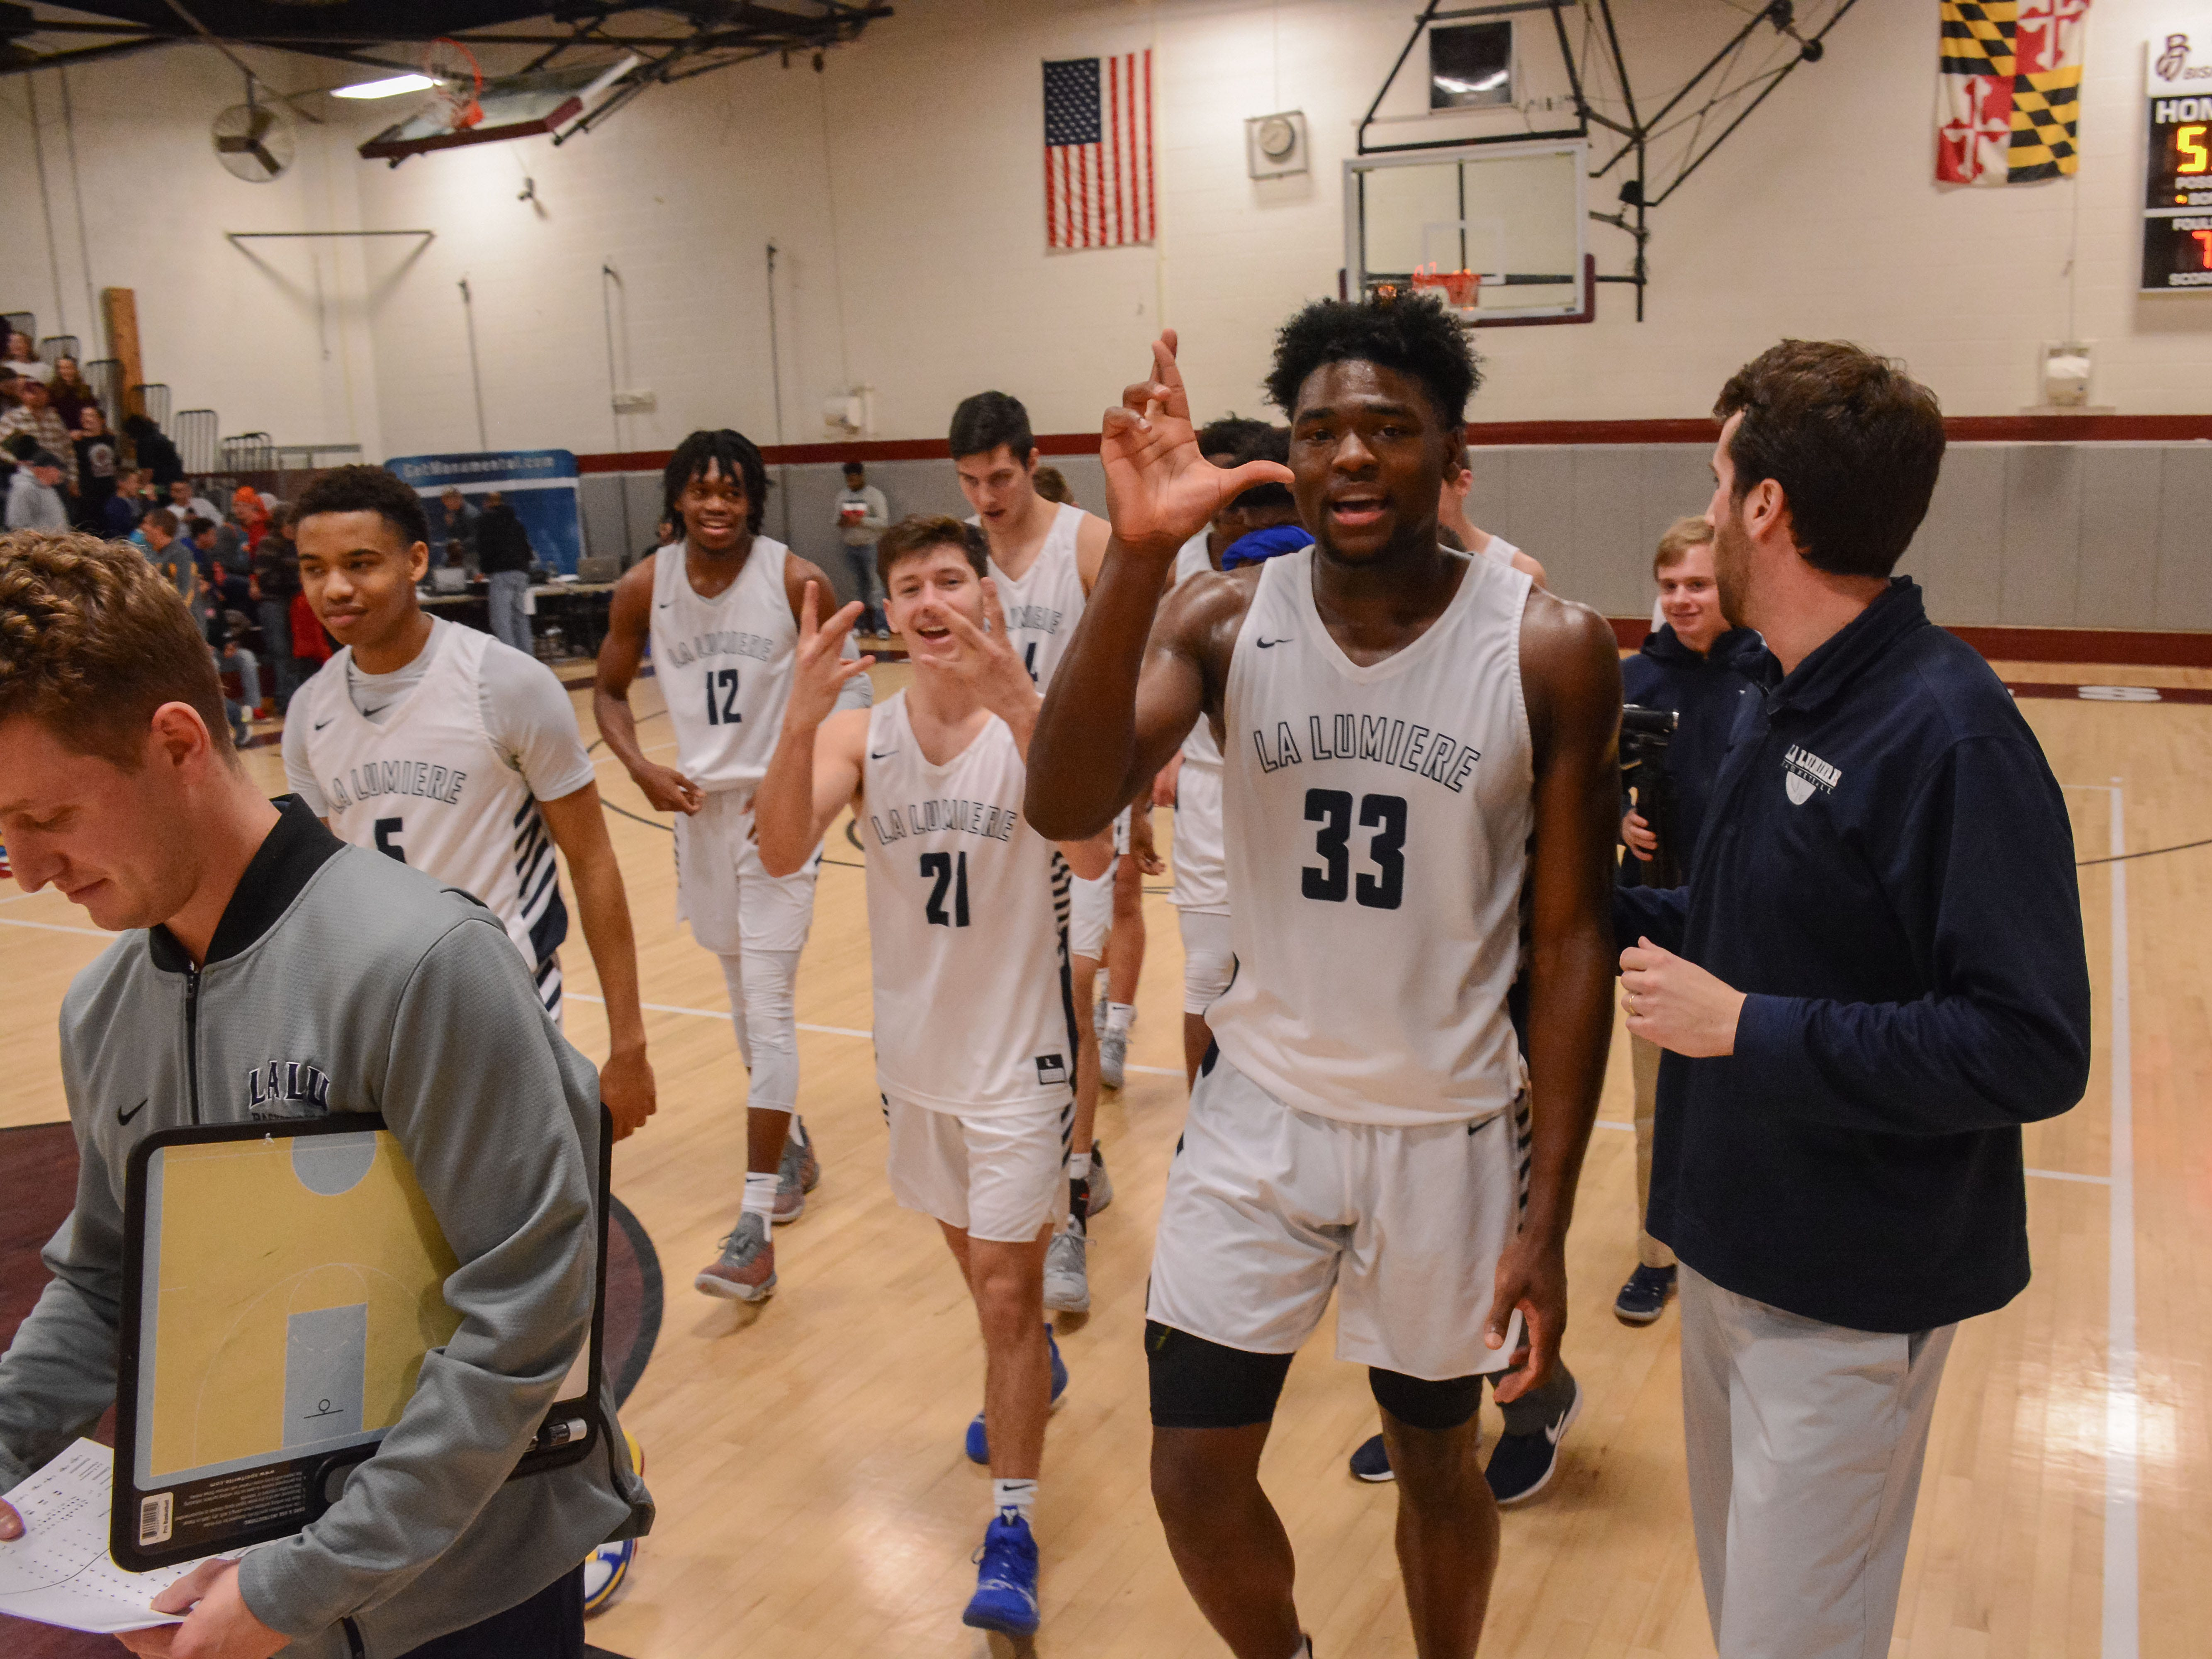 Isaiah Stewart of Rochester, one of the top high school basketball recruits in the country, walks off the court after his top-ranked La Lumiere team from La Porte, Indiana, defeated Wasatch Academy of Utah at the Bob Kirk Invitational Tournament in Cumberland, Maryland, earlier this month. Stewart has committed to play at the University of Washington next season.